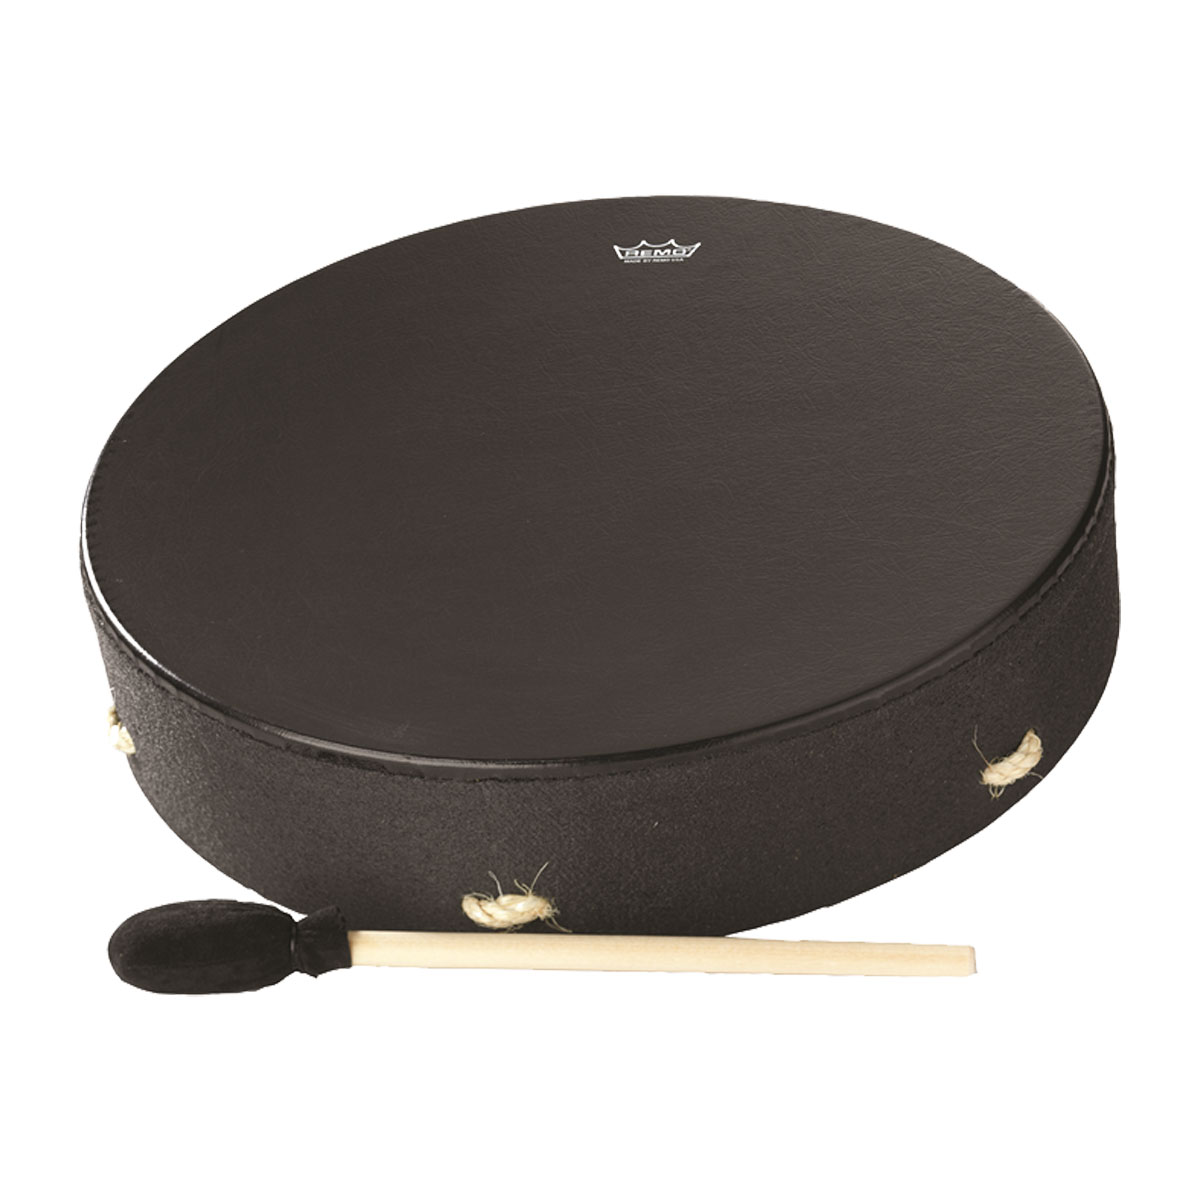 Remo Buffalo Drum 16-by-3.5-Inch - Black Earth